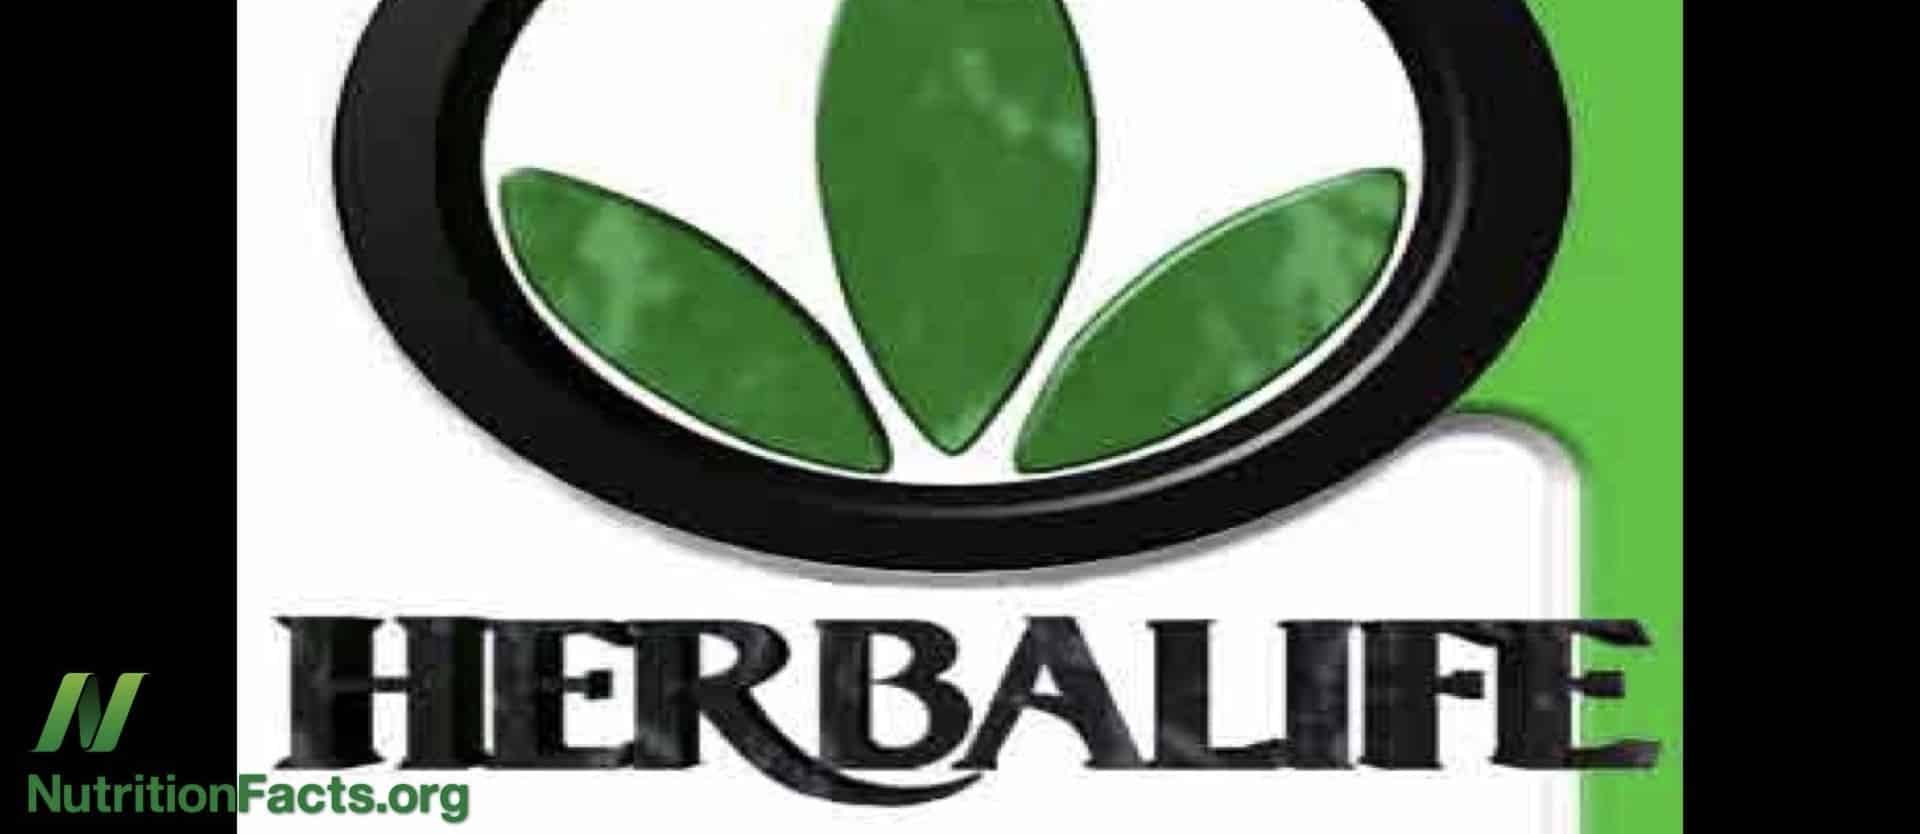 Herbalife Supplement Liver Toxicity Nutritionfacts